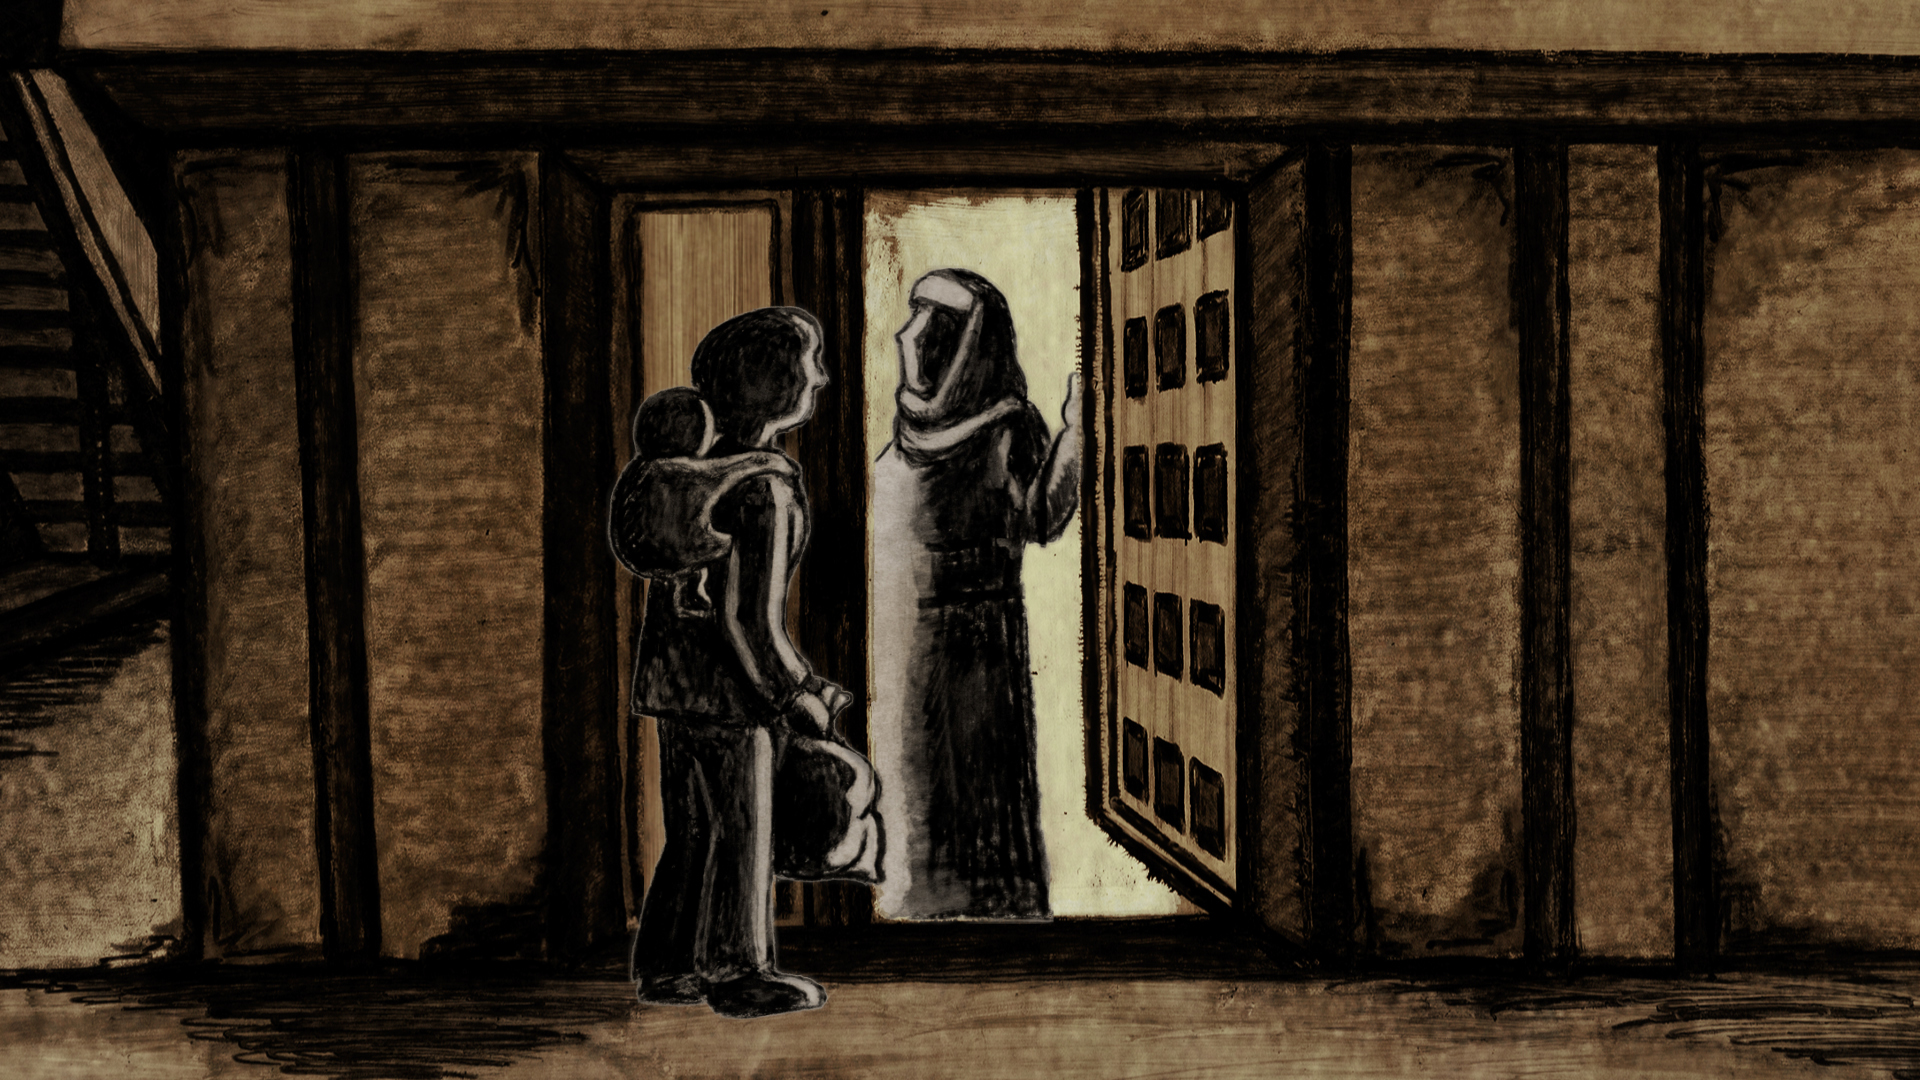 At Door with Leaflet, still from animated sequence in Naila and the Uprising, Directed by Julia Bacha. Image Courtesy of Just Vision.